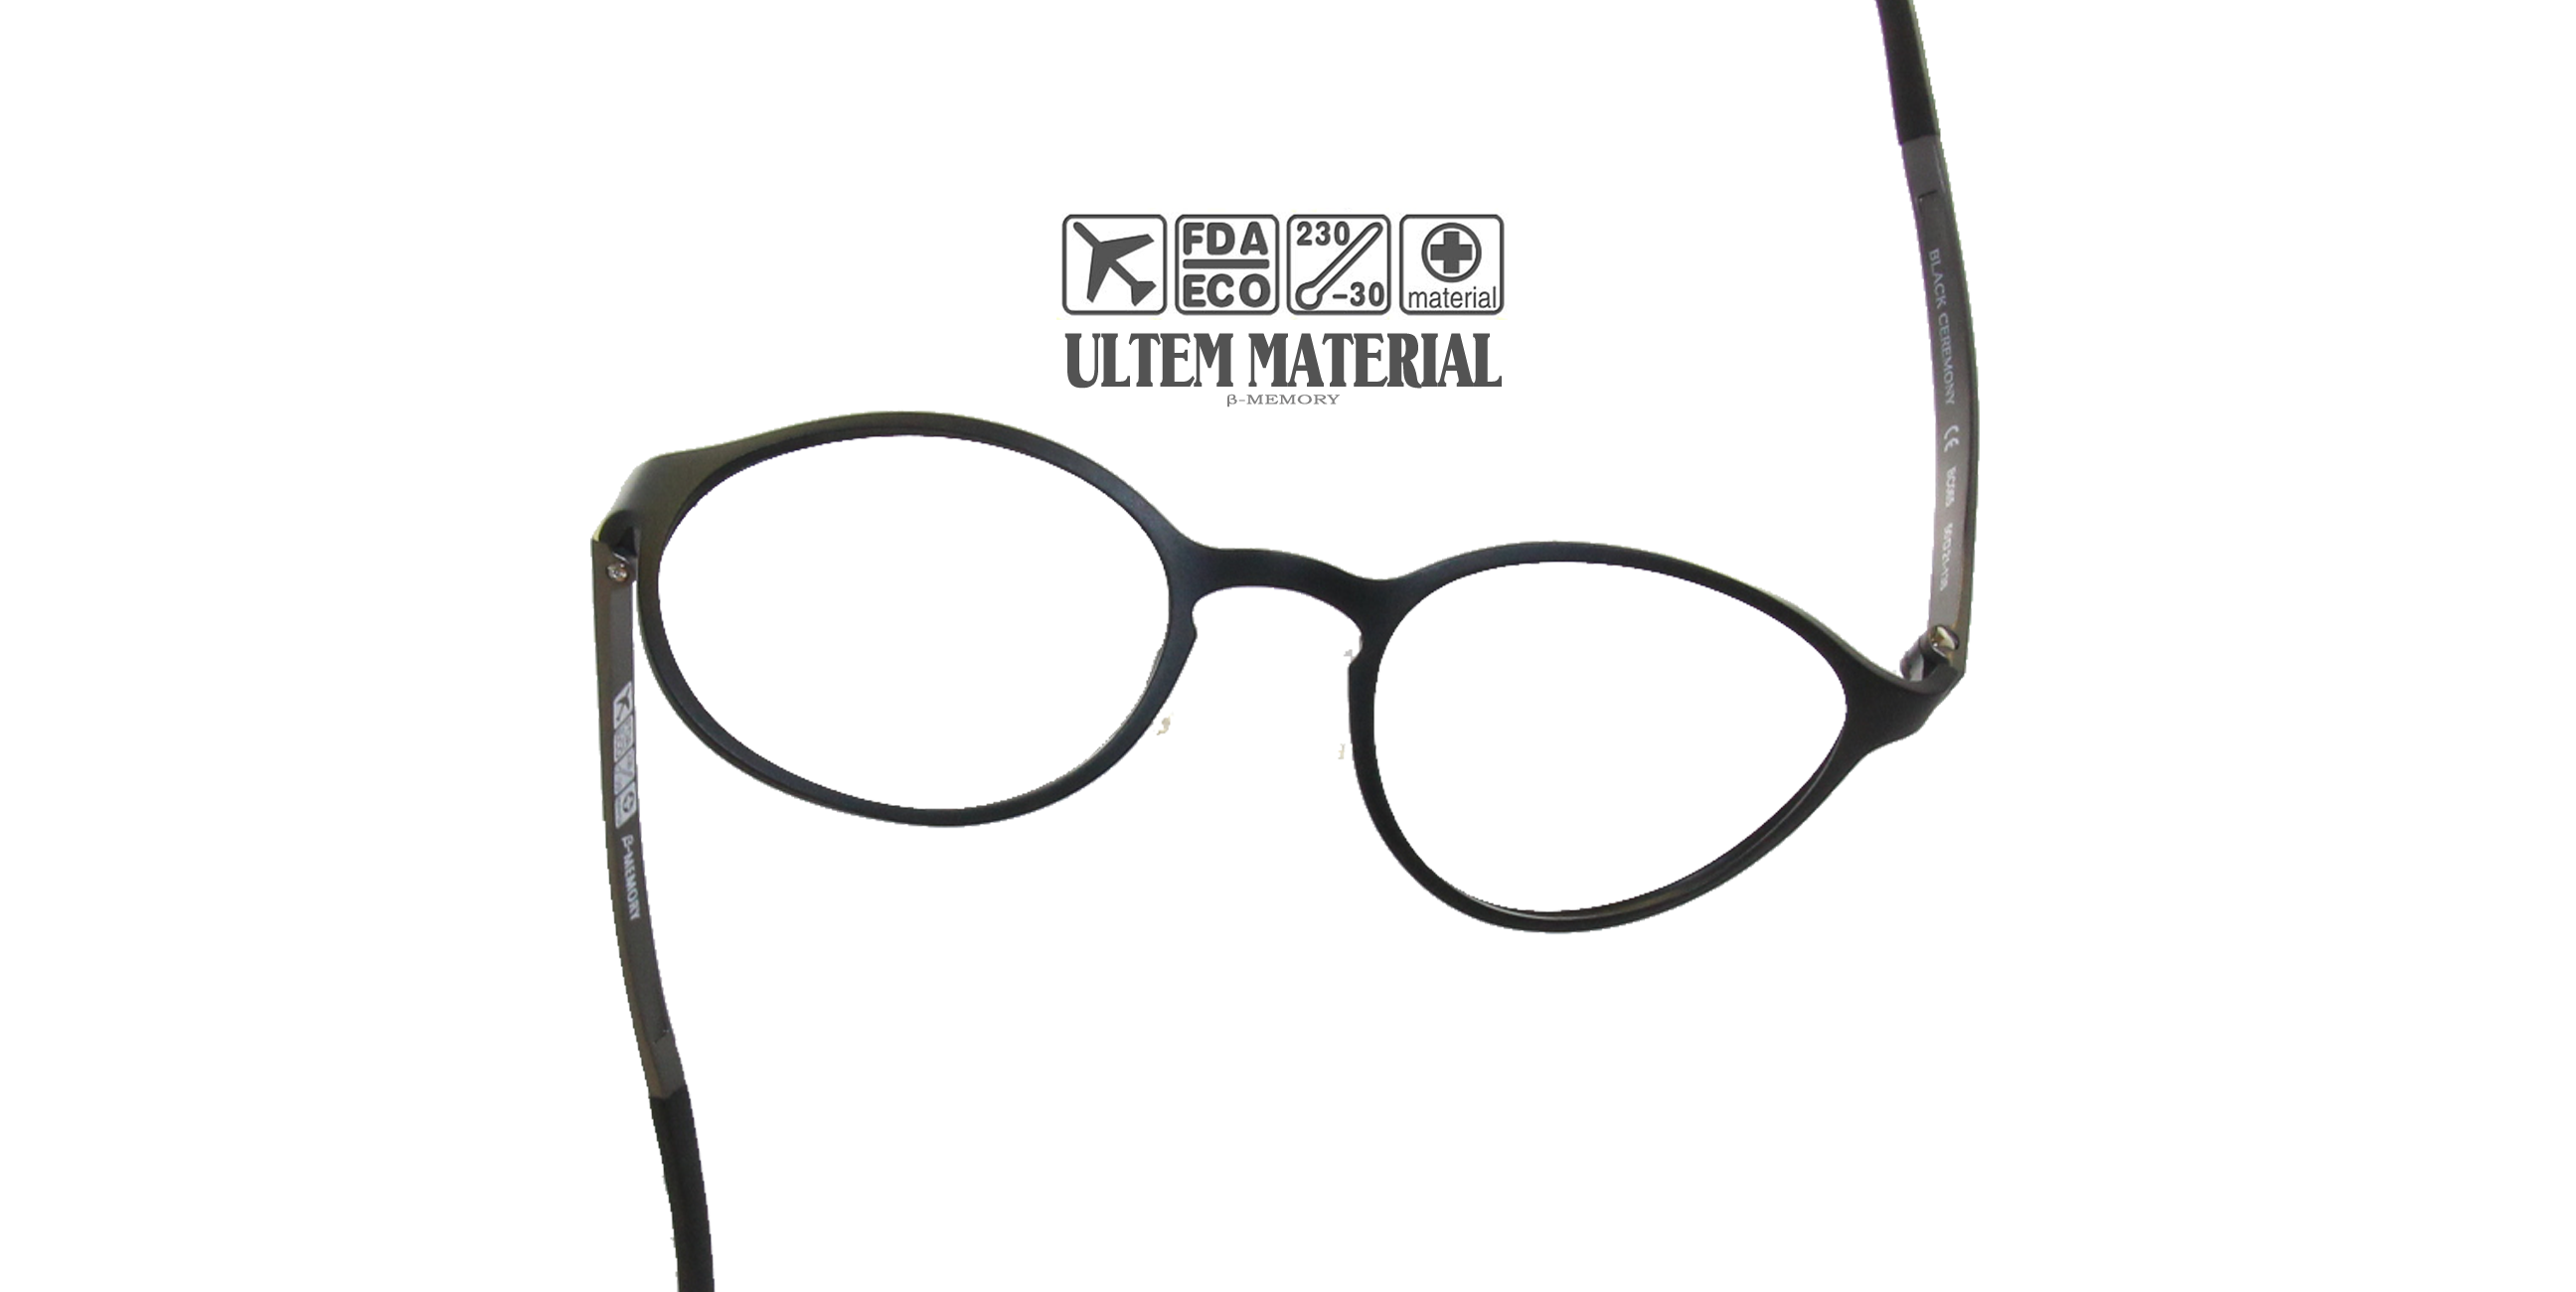 Black optical prescription eyeglasses ULTEM Unbreakable Material